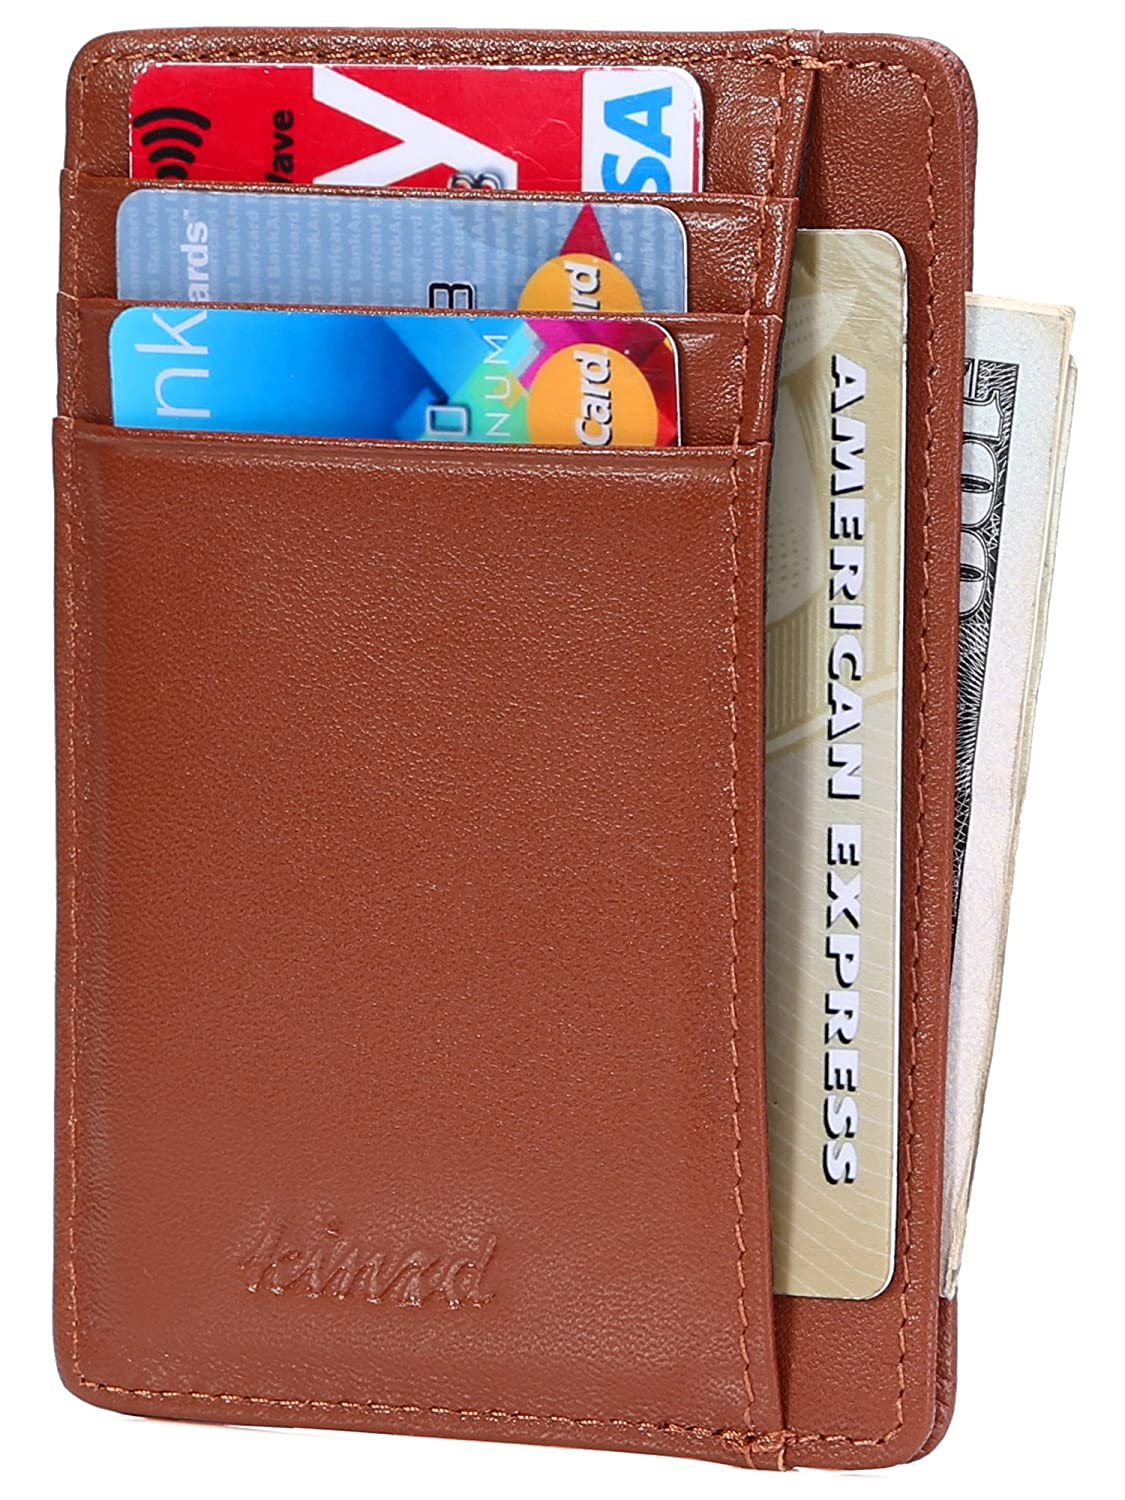 Slim Wallet RFID Front Pocket Wallet Minimalist Secure Thin Credit Card Holder AS216-K